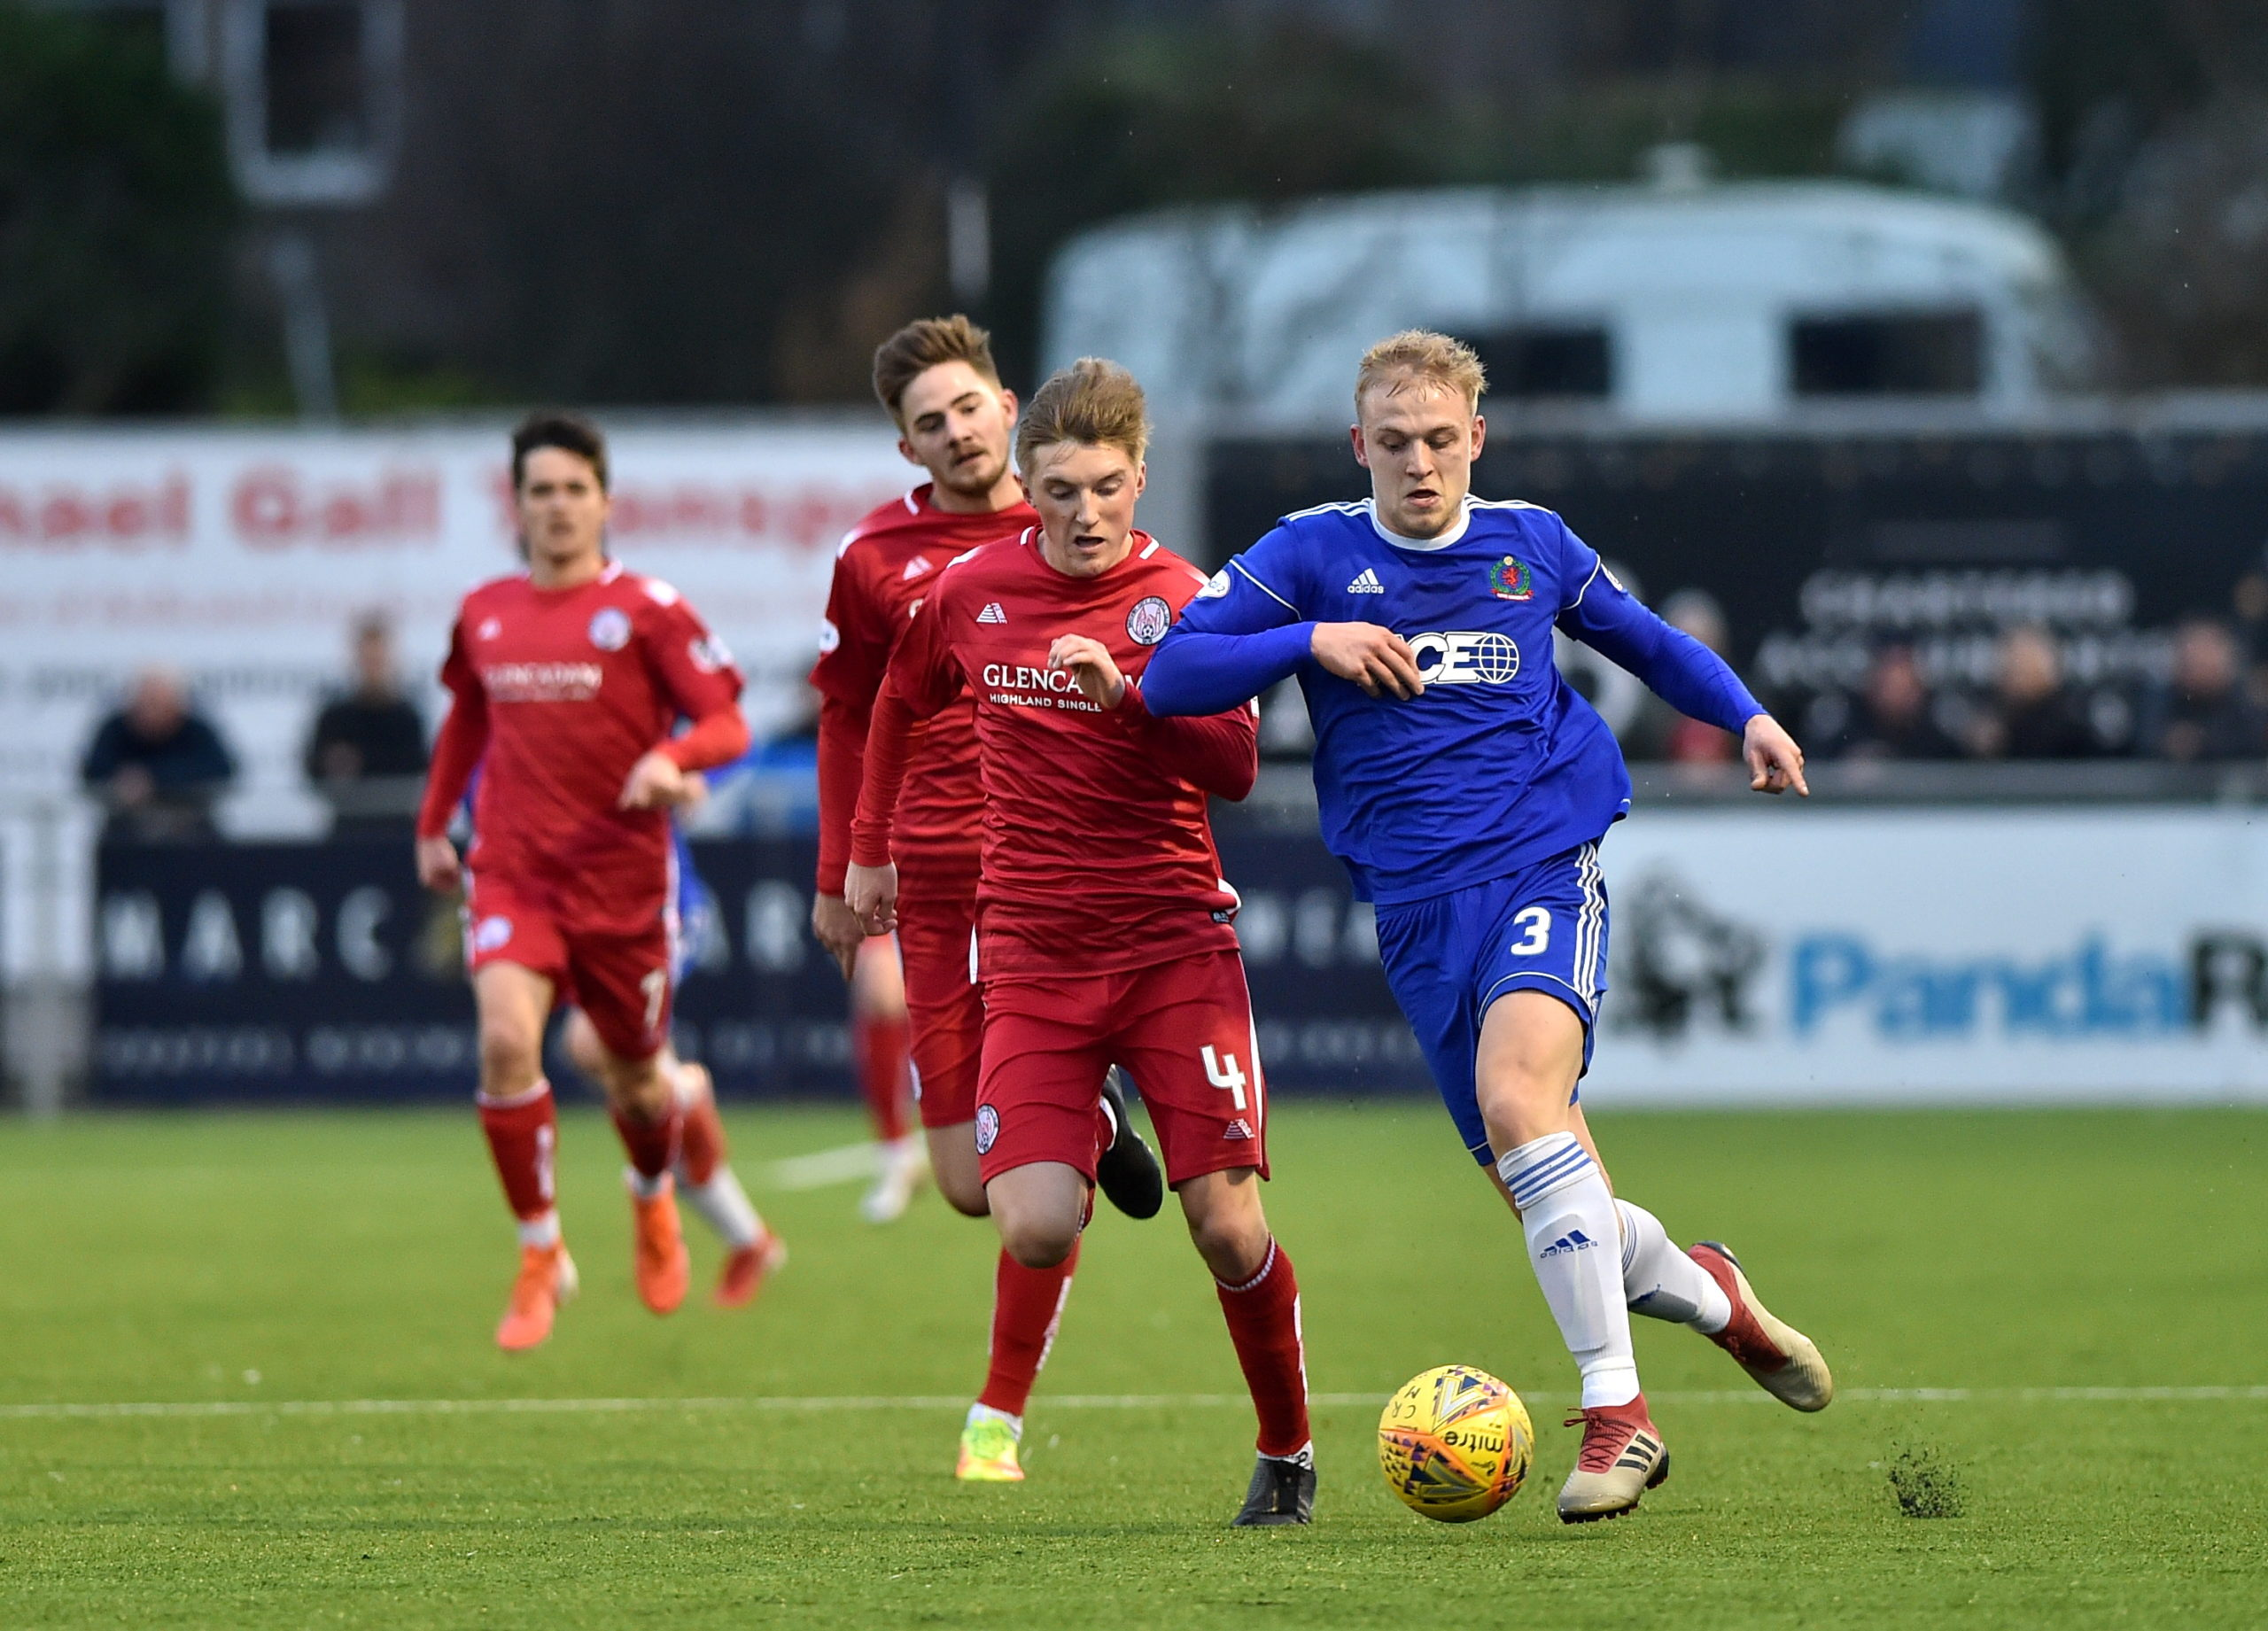 Harry Milne drives forward for Cove.